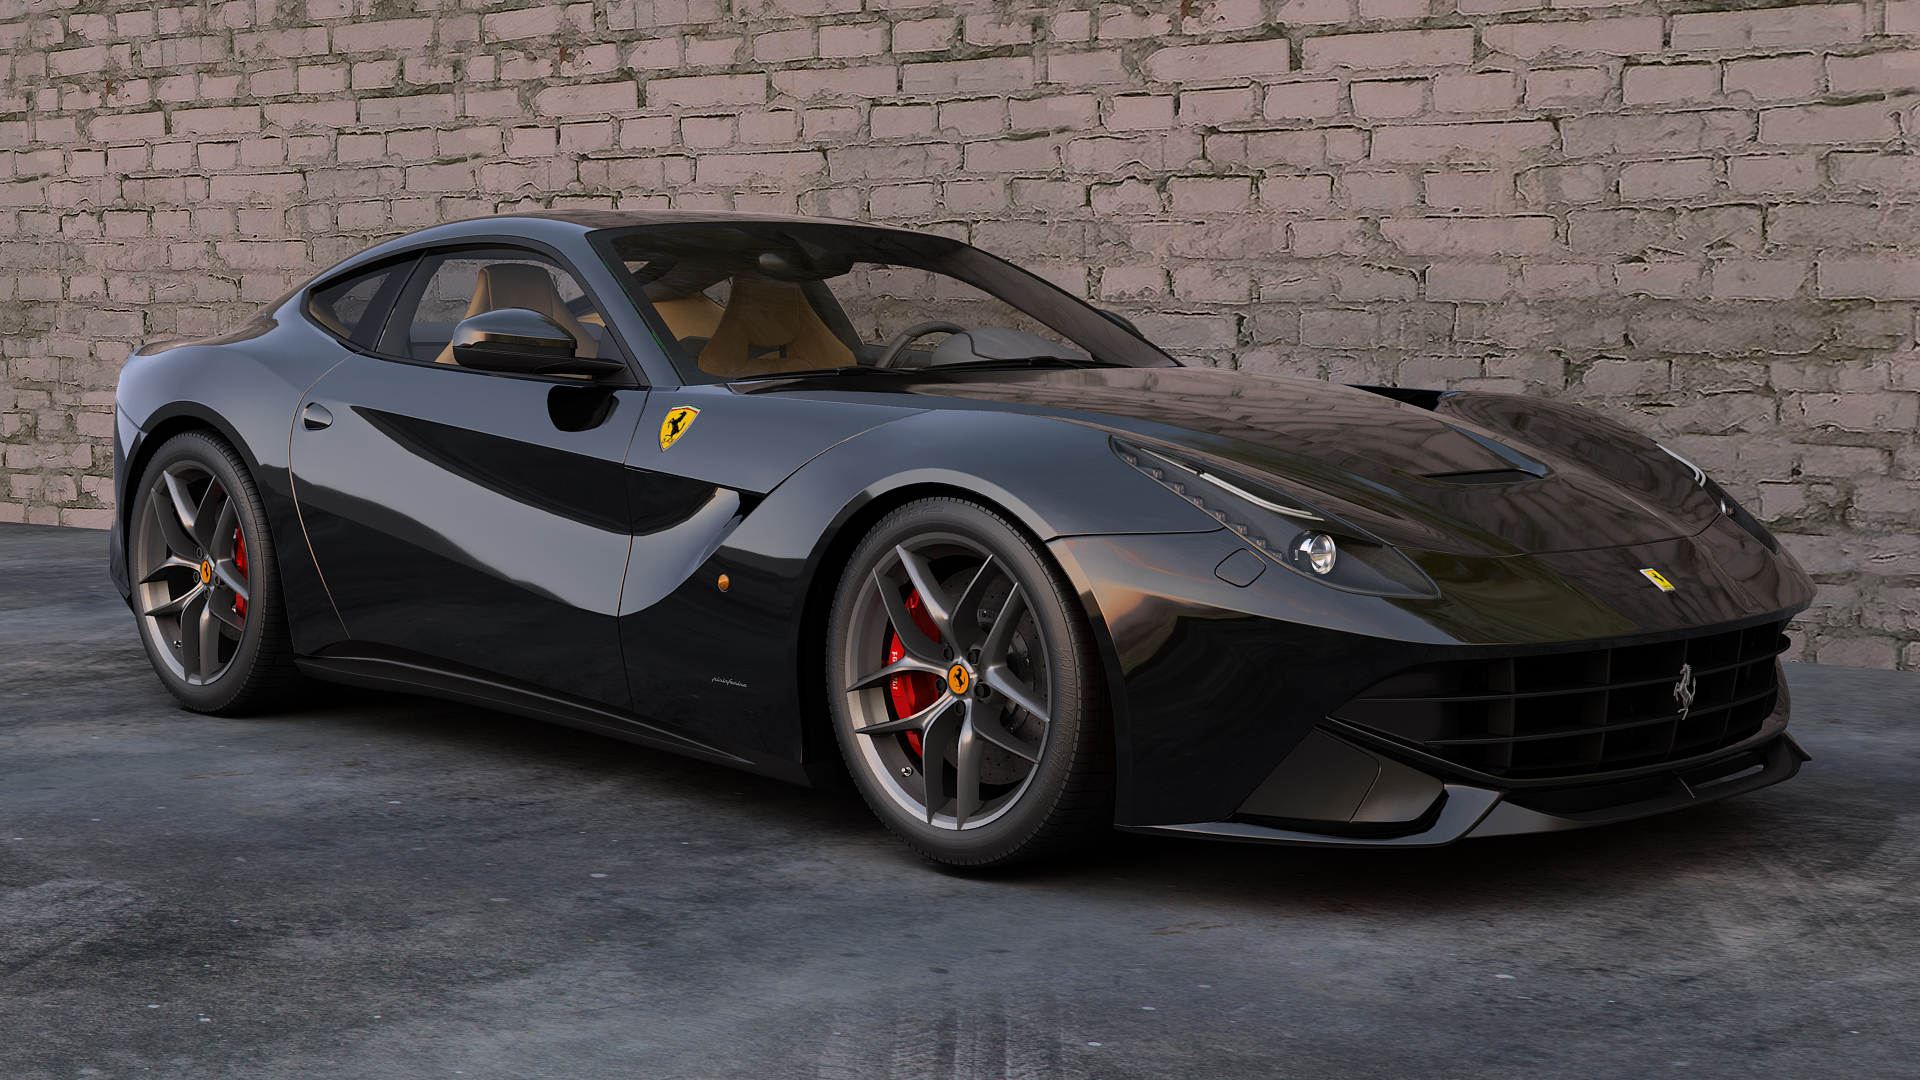 ferrari f12 berlinetta pictures #1